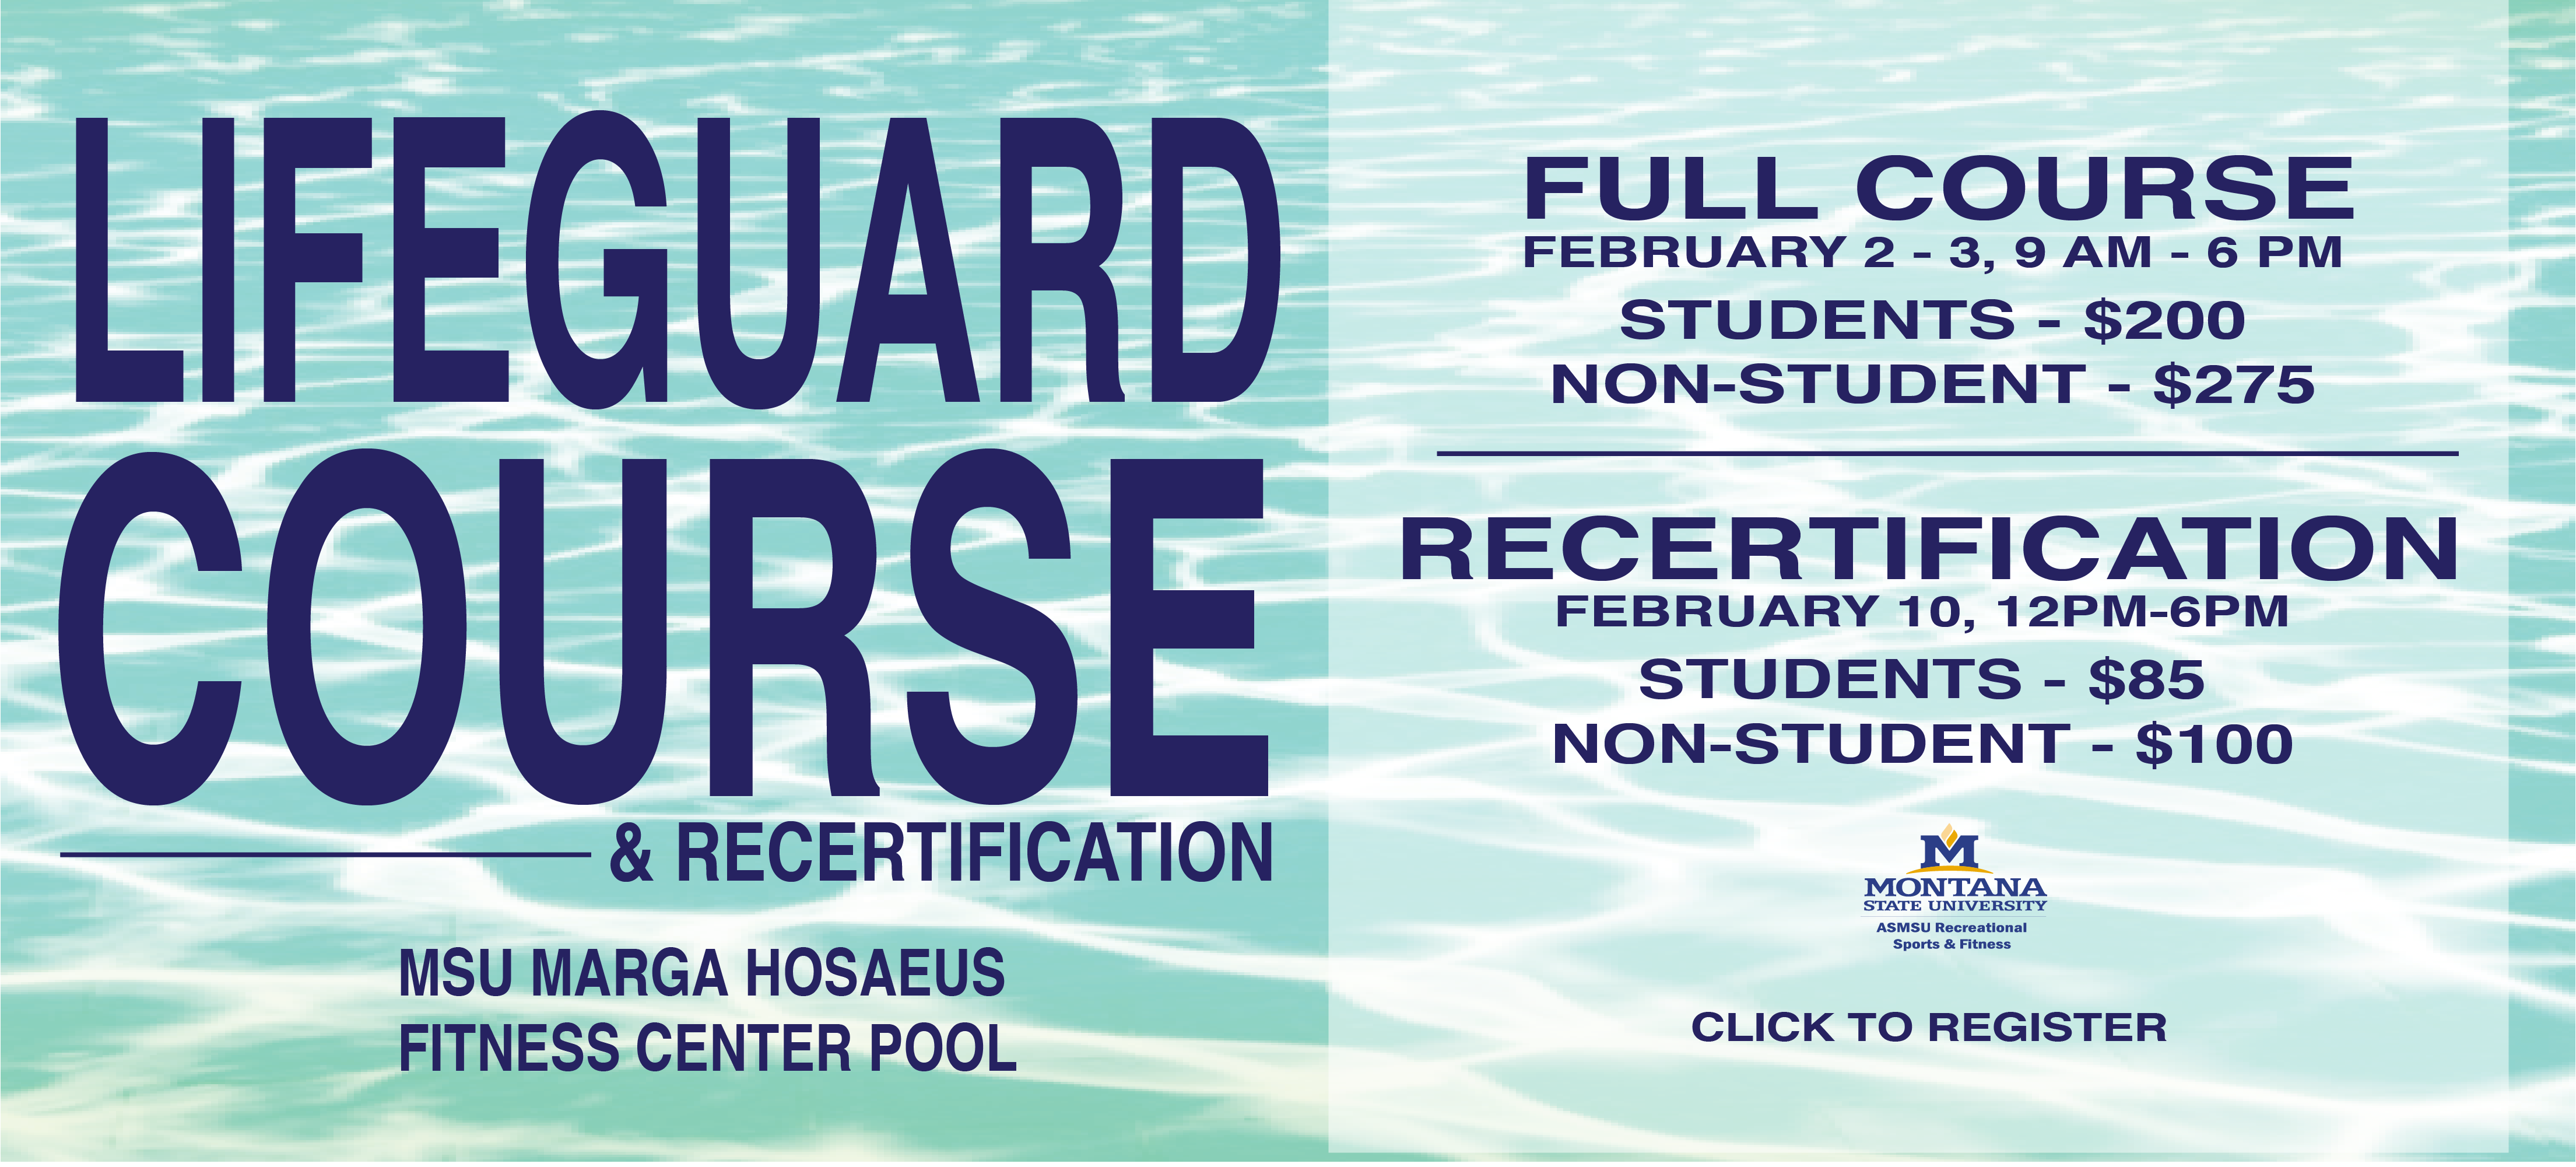 American Red Cross Lifeguard Certification and Recertification courses will be offered at the Hosaeus Fitness Center.  Full course, Feb. 2-3, 9 am - 6 pm. Recertification, Feb. 10, 2019, 12-6 pm.  Please call for price and to pre-register.  406-994-5000.